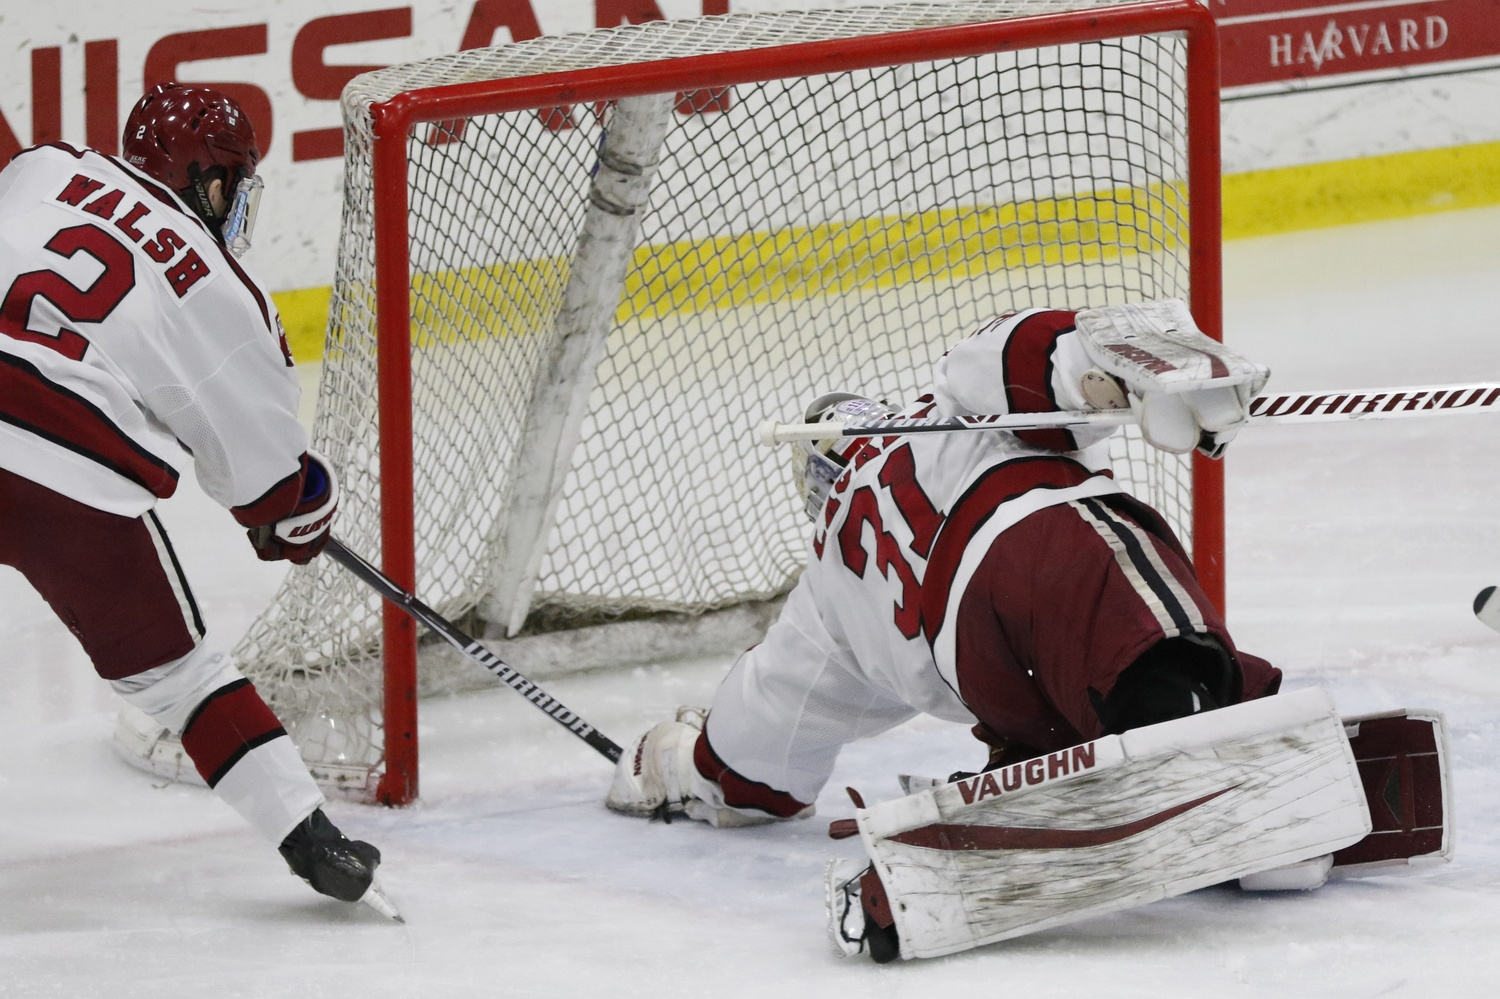 Michael Lackey has proven to be an effective, reliable backstop this season, and has maintained a .936 save percentage over January's slate of games.